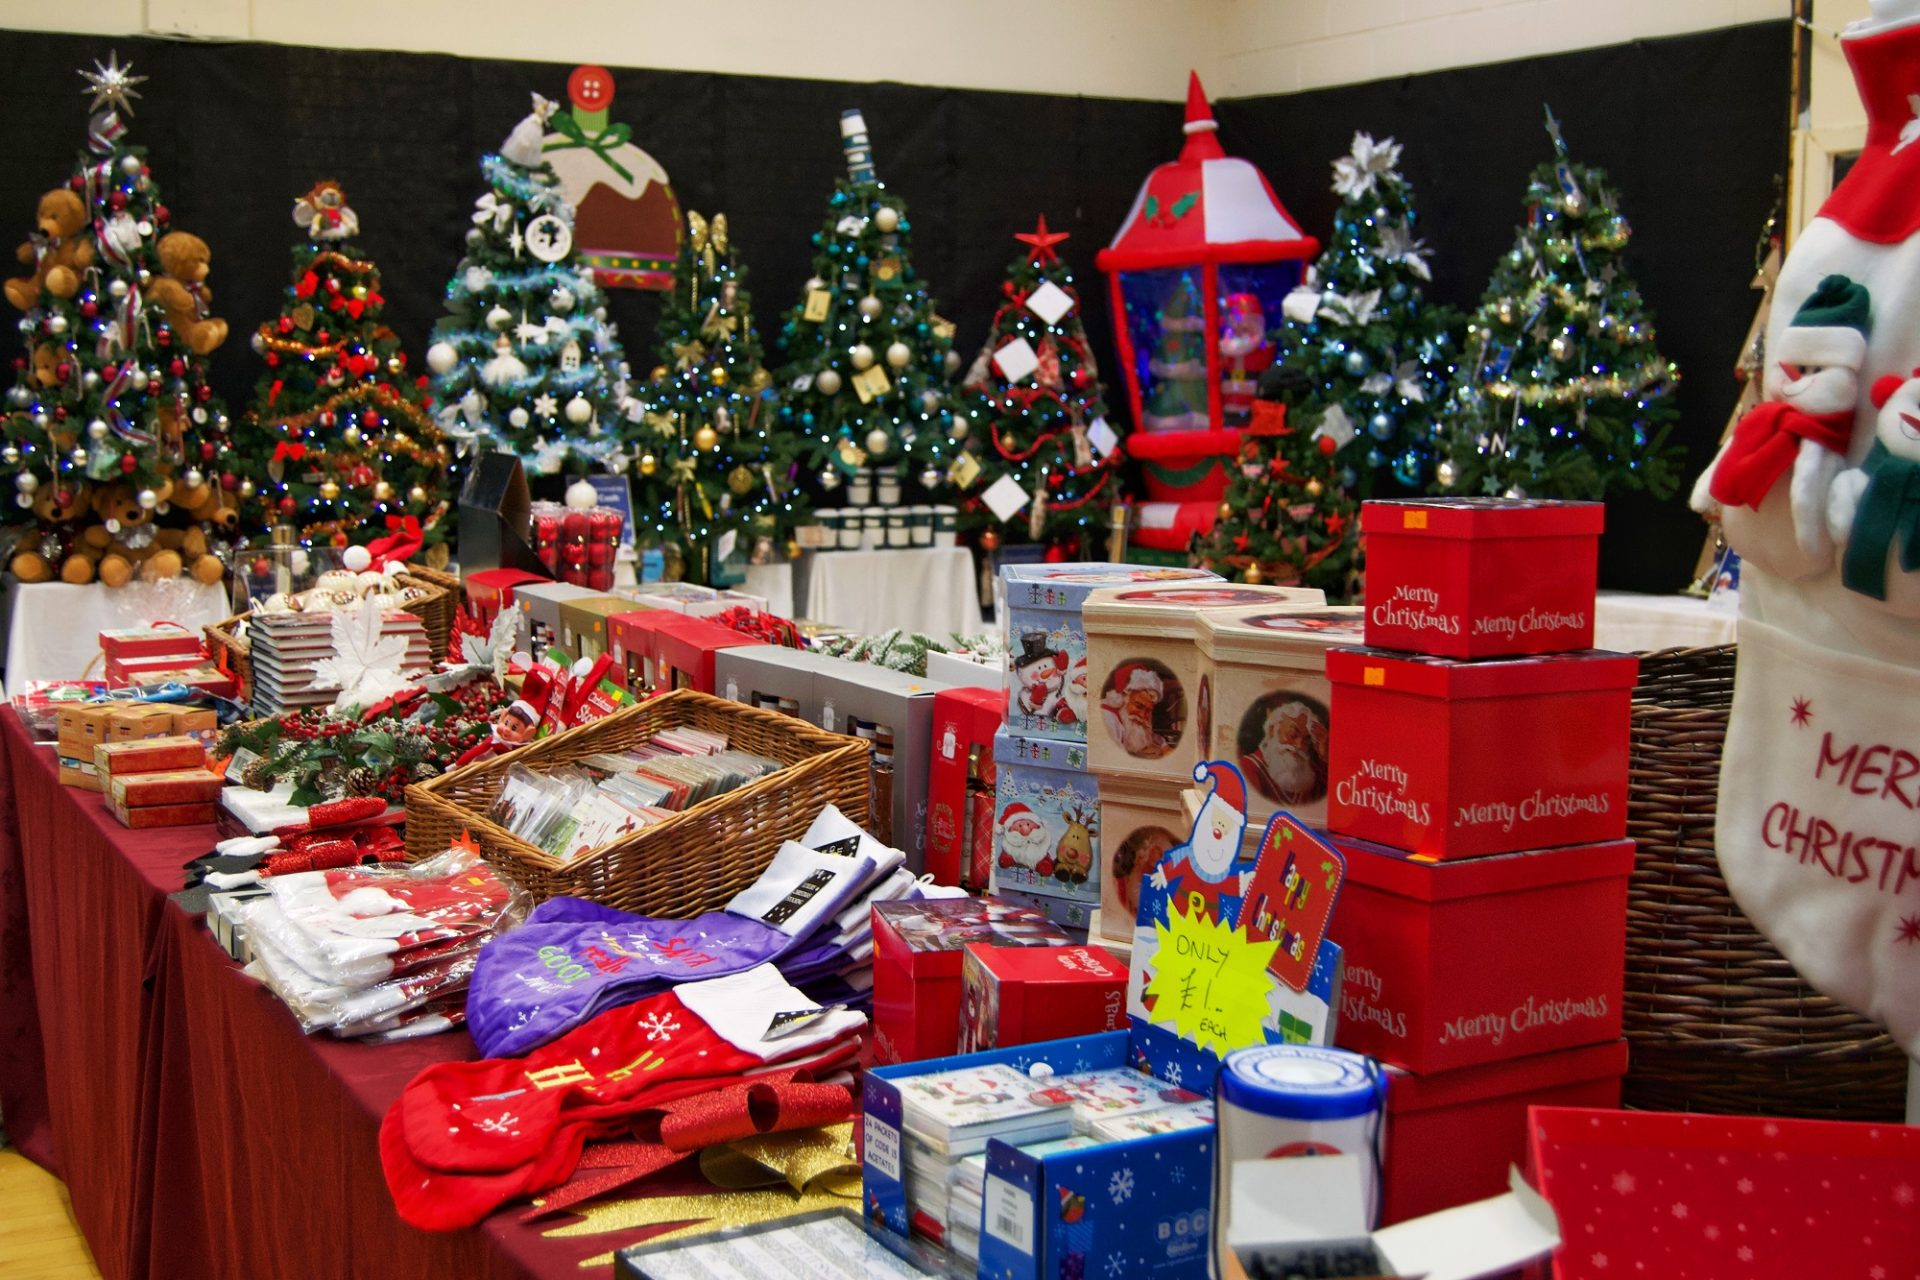 Festival of Trees and Christmas merchandise